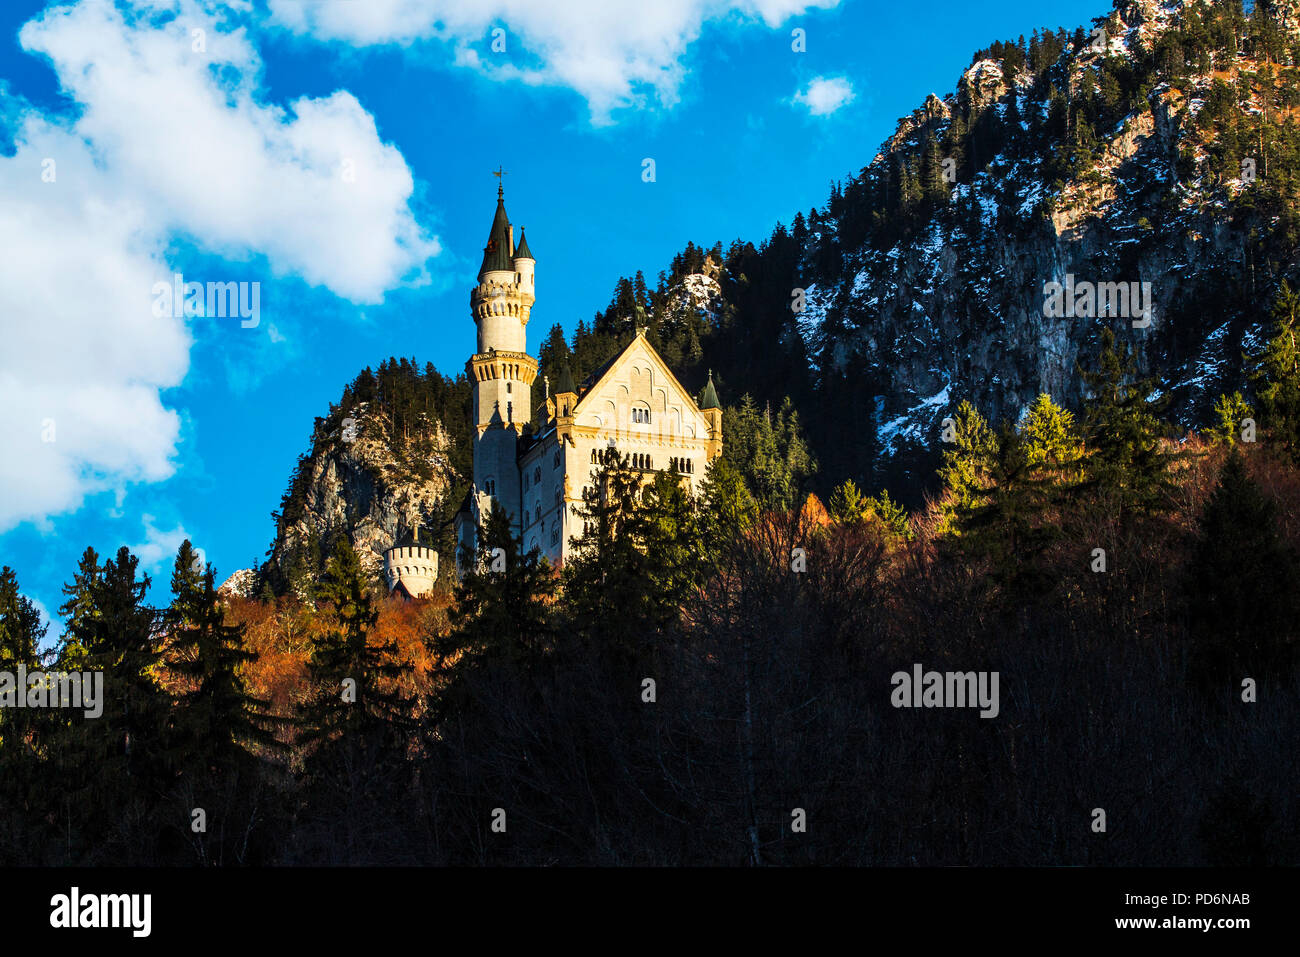 German disney castle in the mountains on a sunny day with blue sky - Stock Image